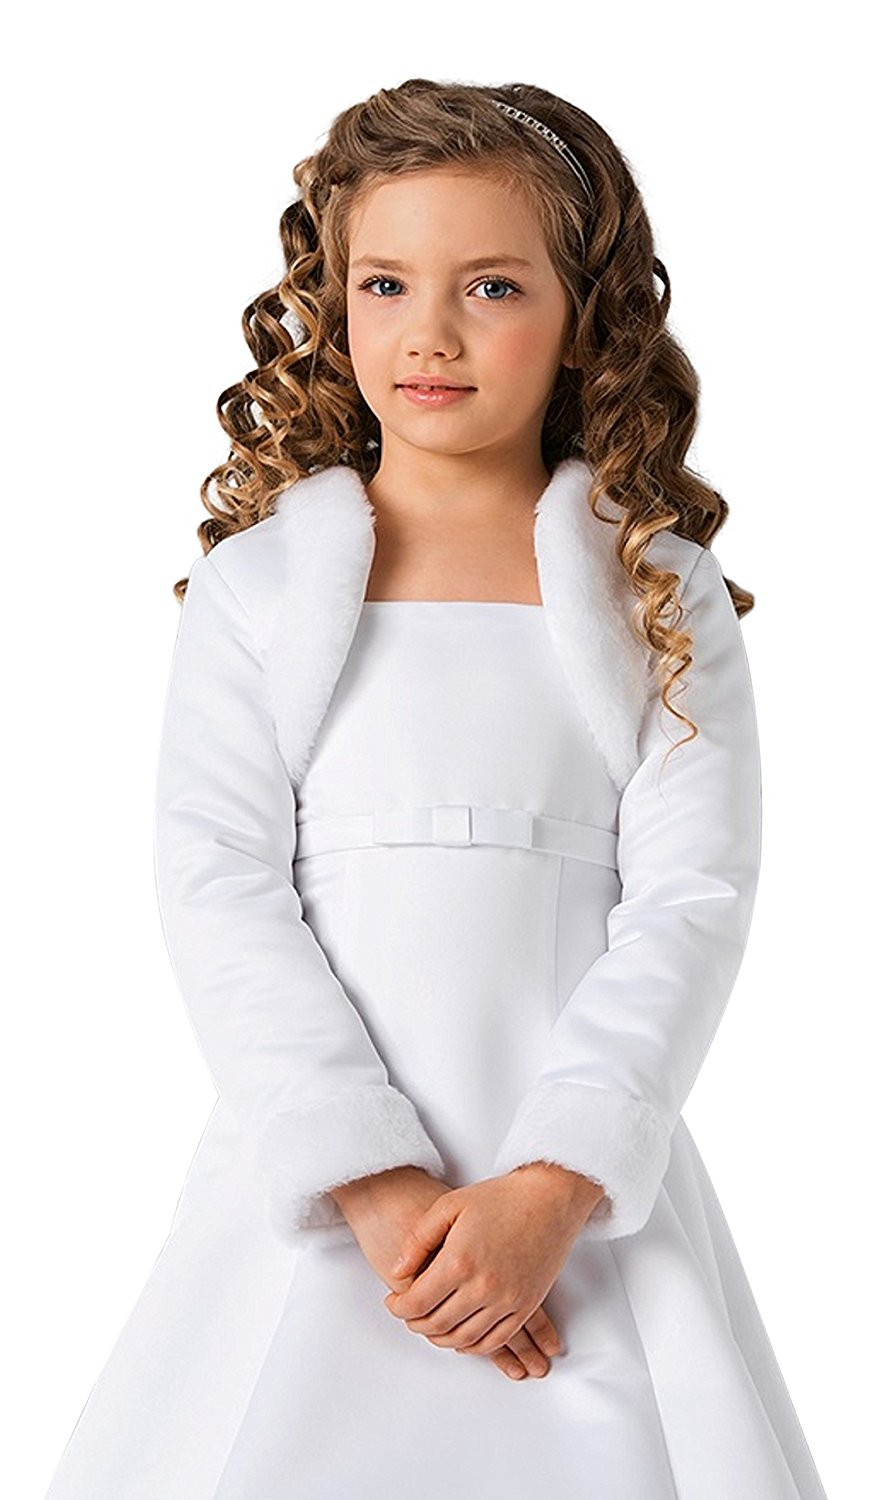 f0c0aeadb0776 Get Quotations · Lacey Bell Girls Communion Flower Girl Faux Fur Jacket  Bolero CJ101